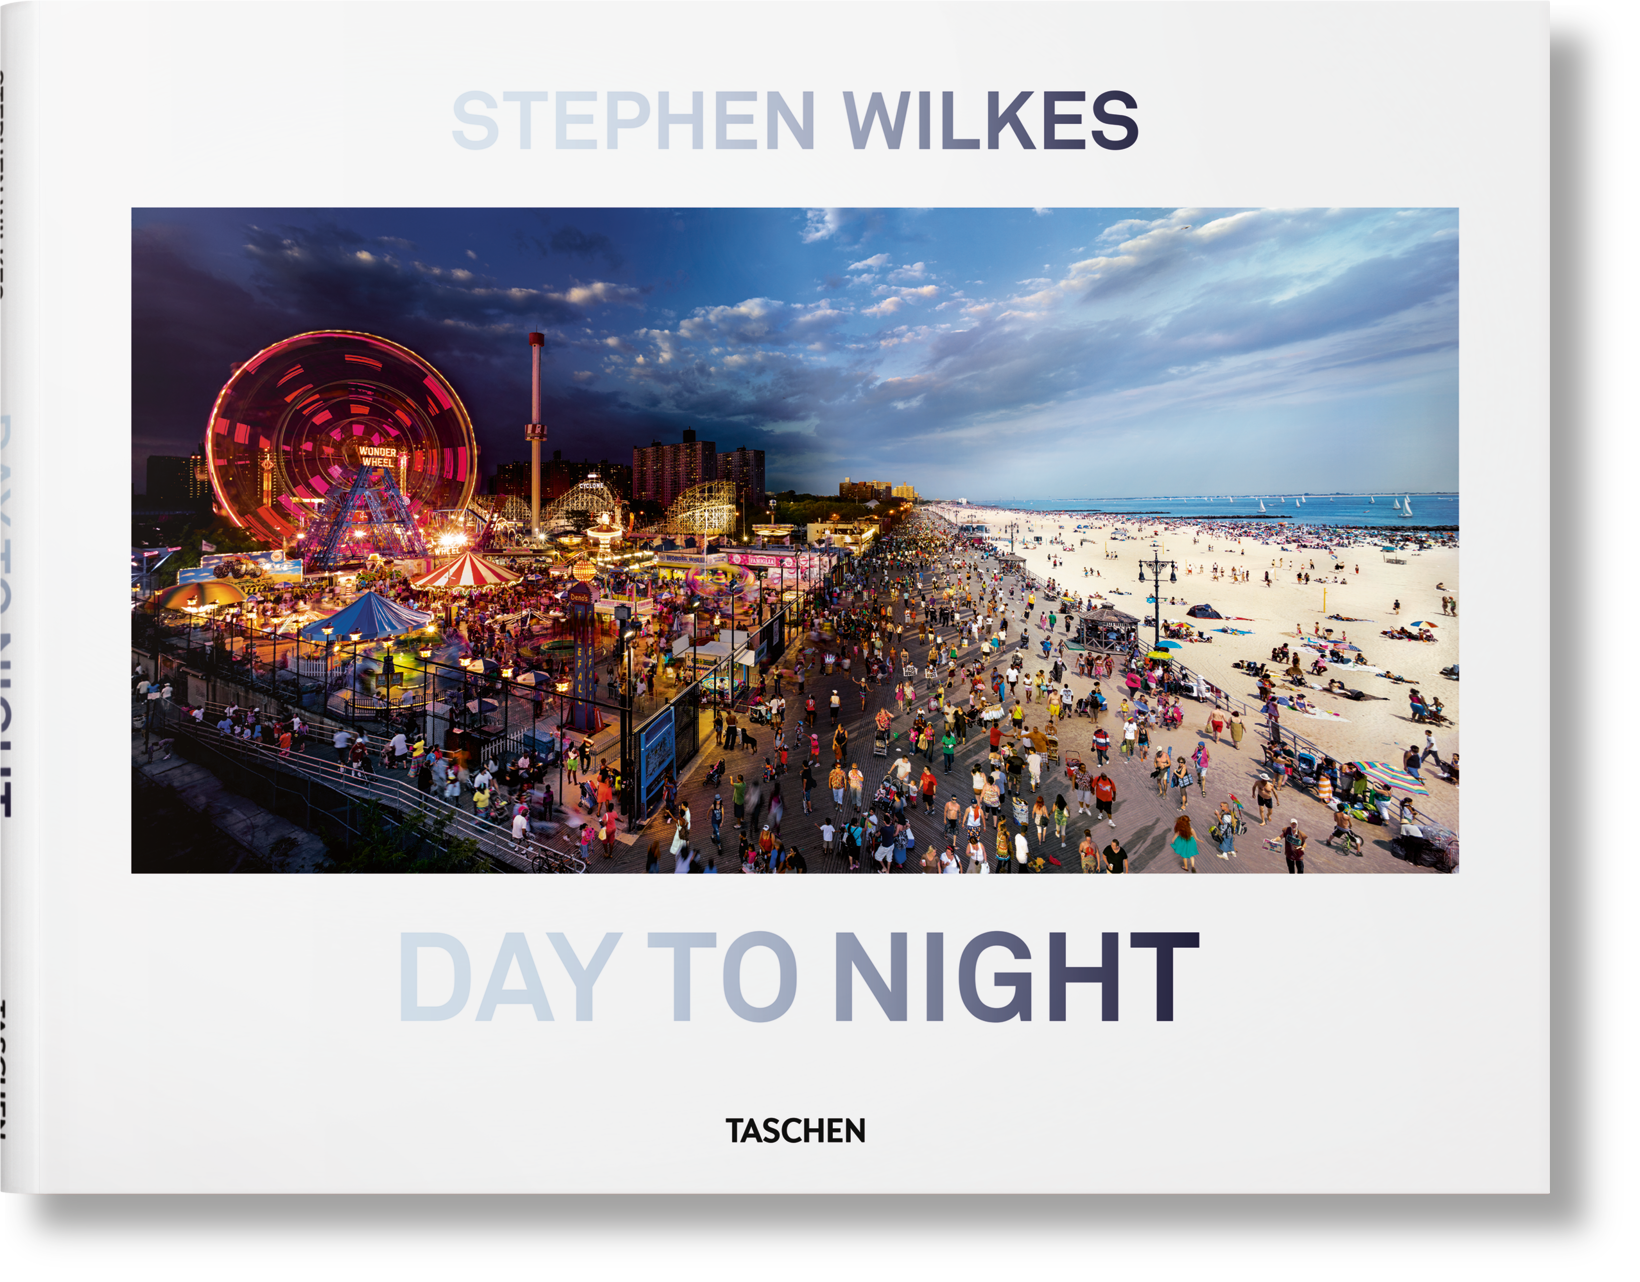 Day to Night - Wilkes Stephen